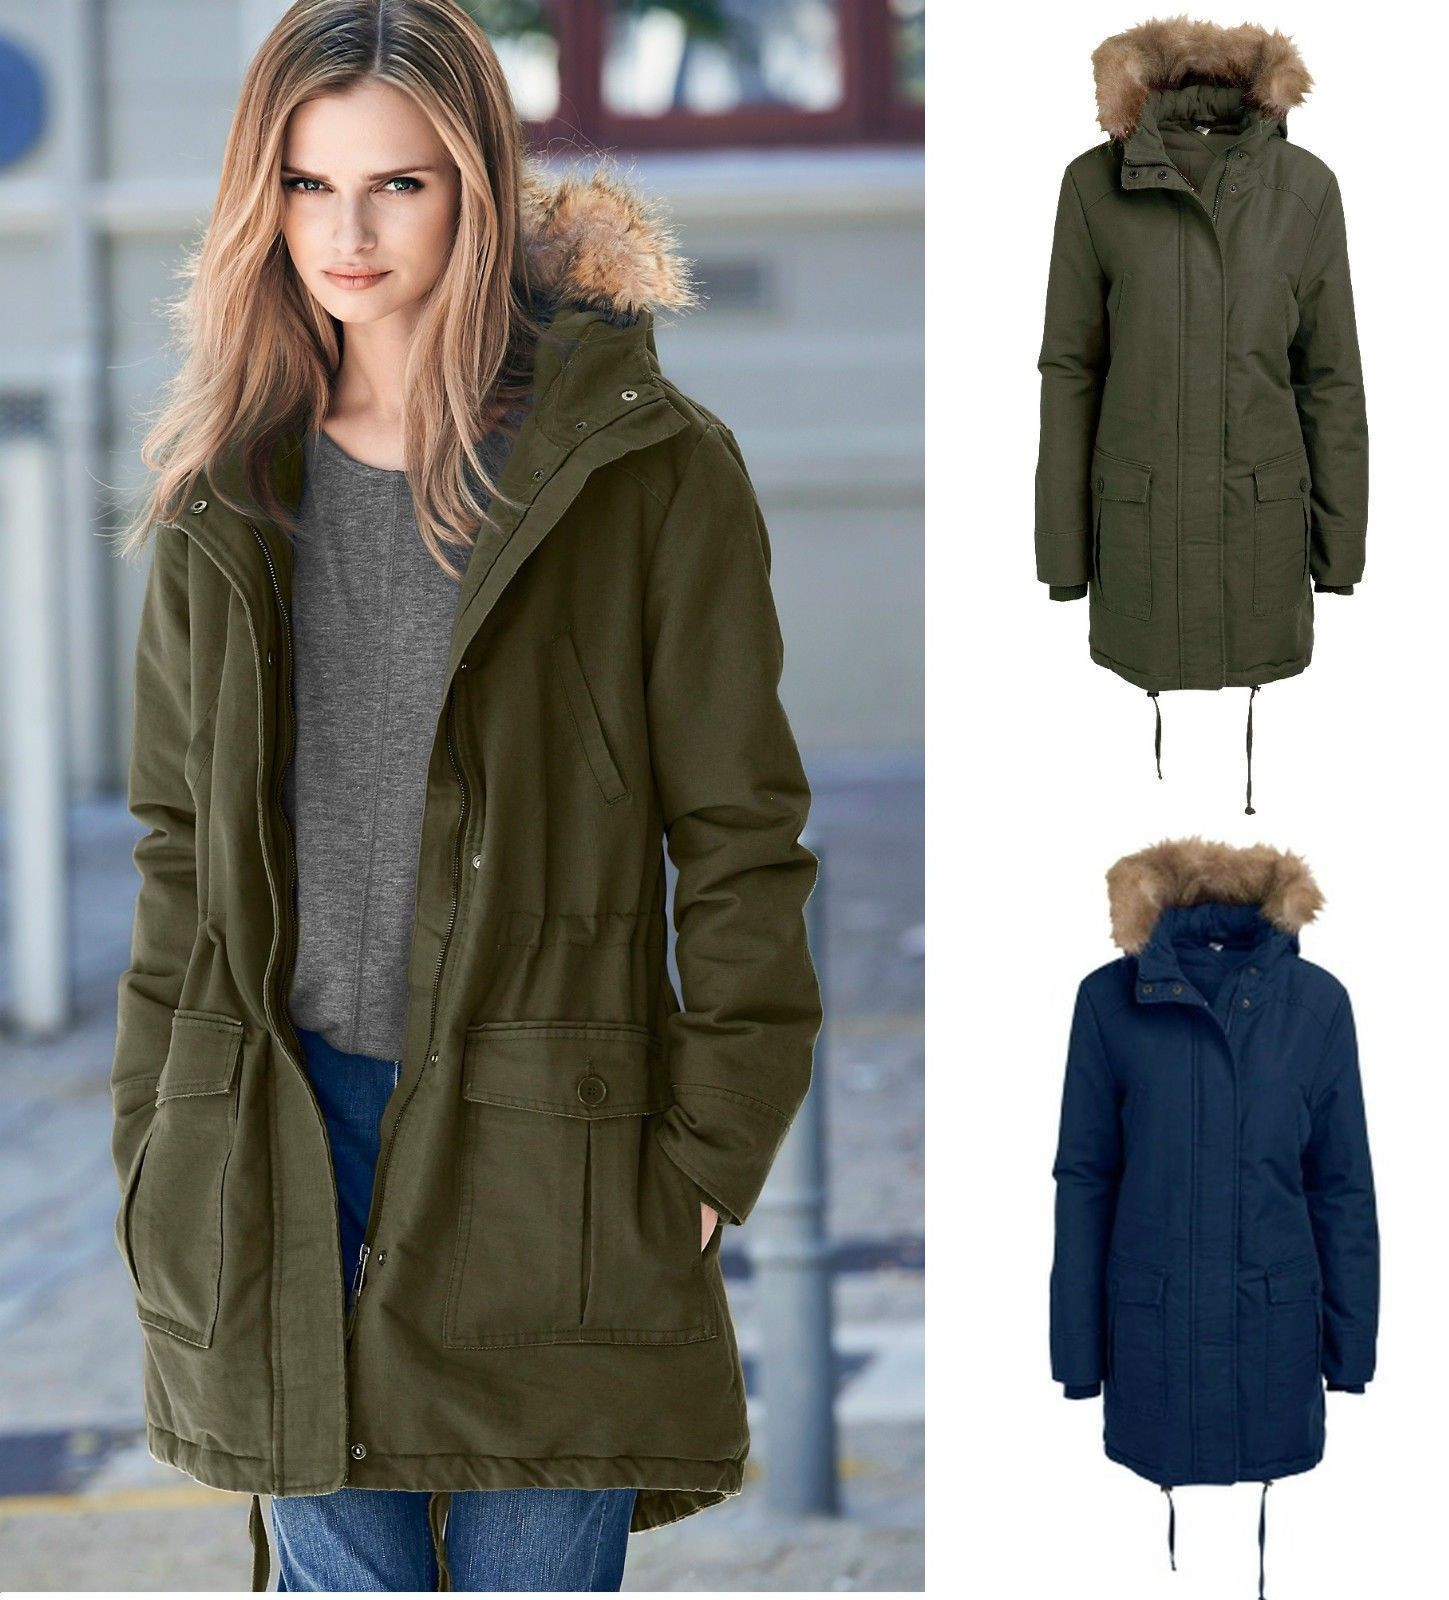 ladies-long-parka-jacket | Parka Jacket | Pinterest | Long parka ...